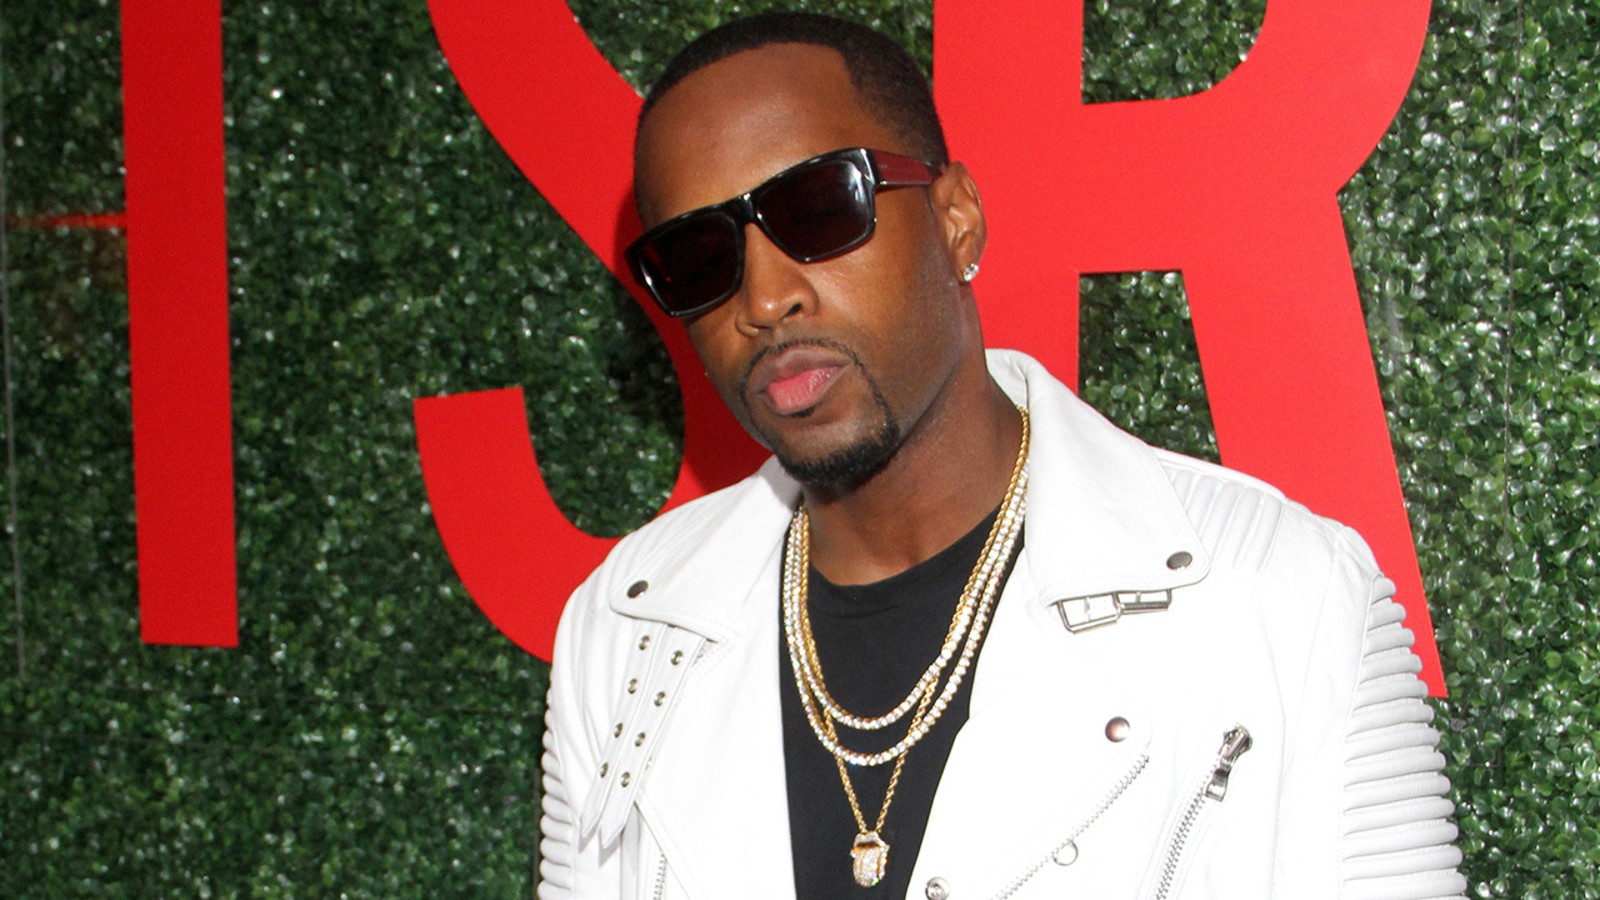 safaree-raises-awareness-about-mental-health-during-these-hard-times